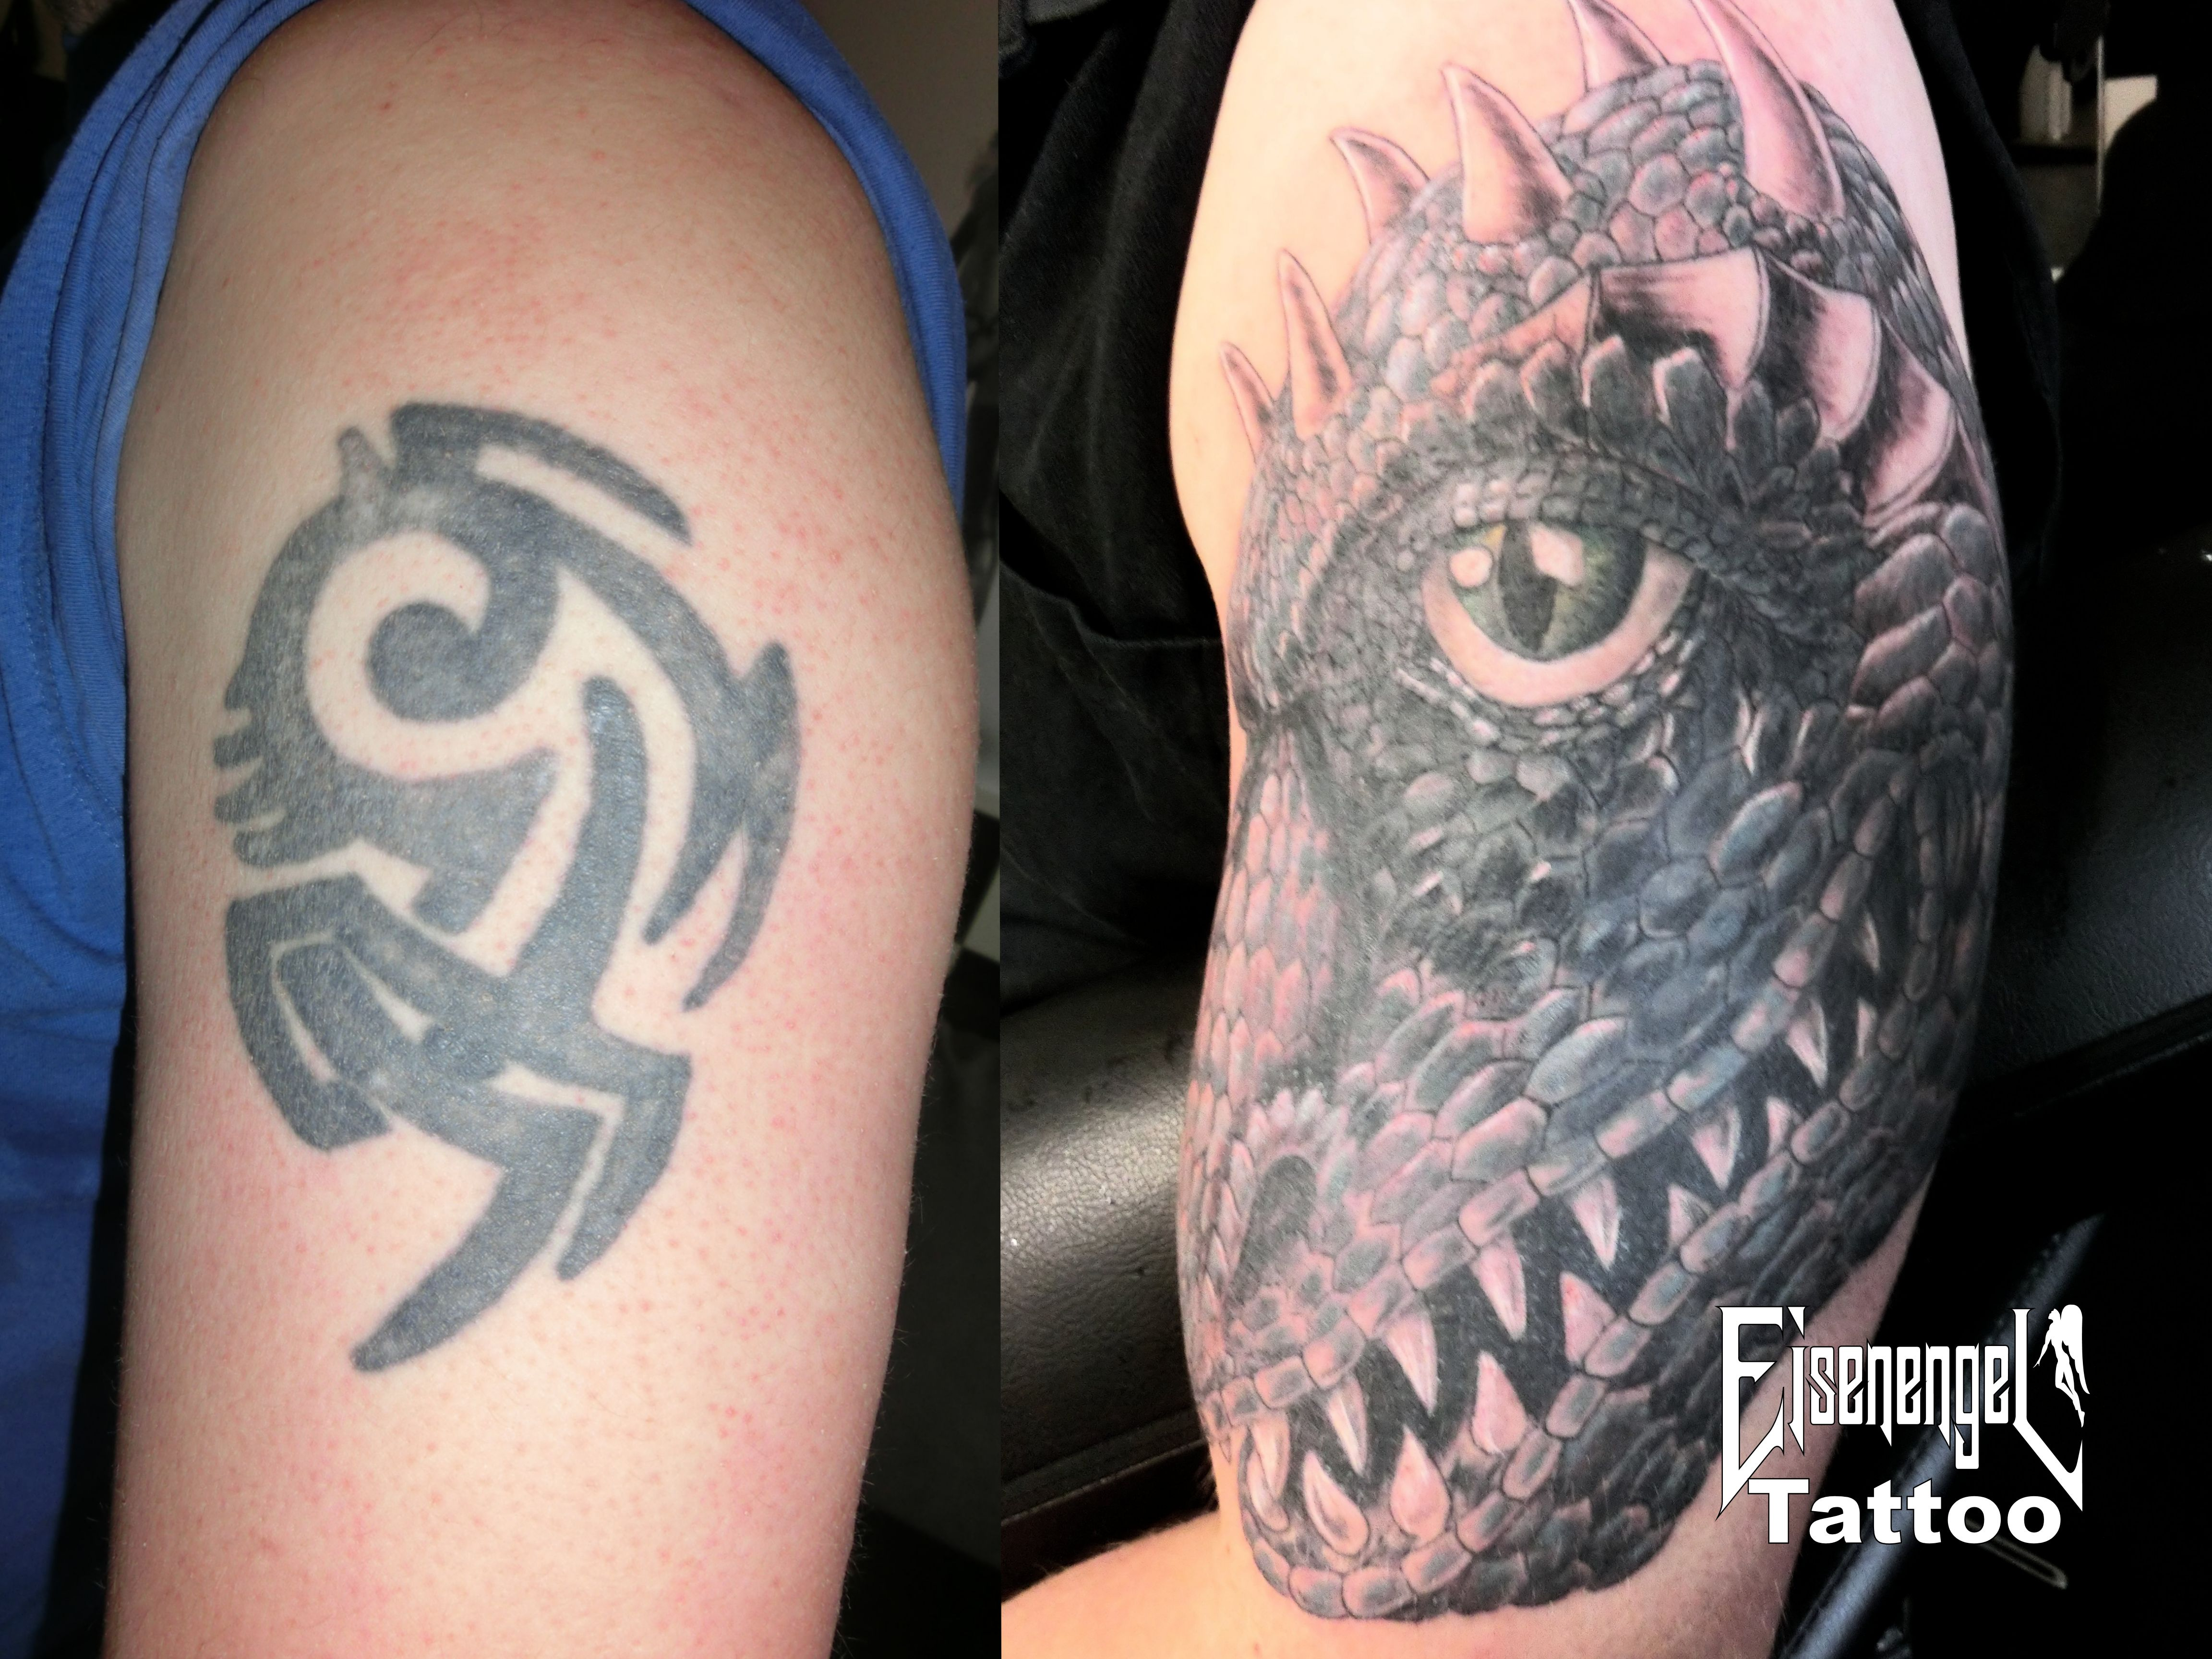 tattoo_coverup_drache_4.jpg